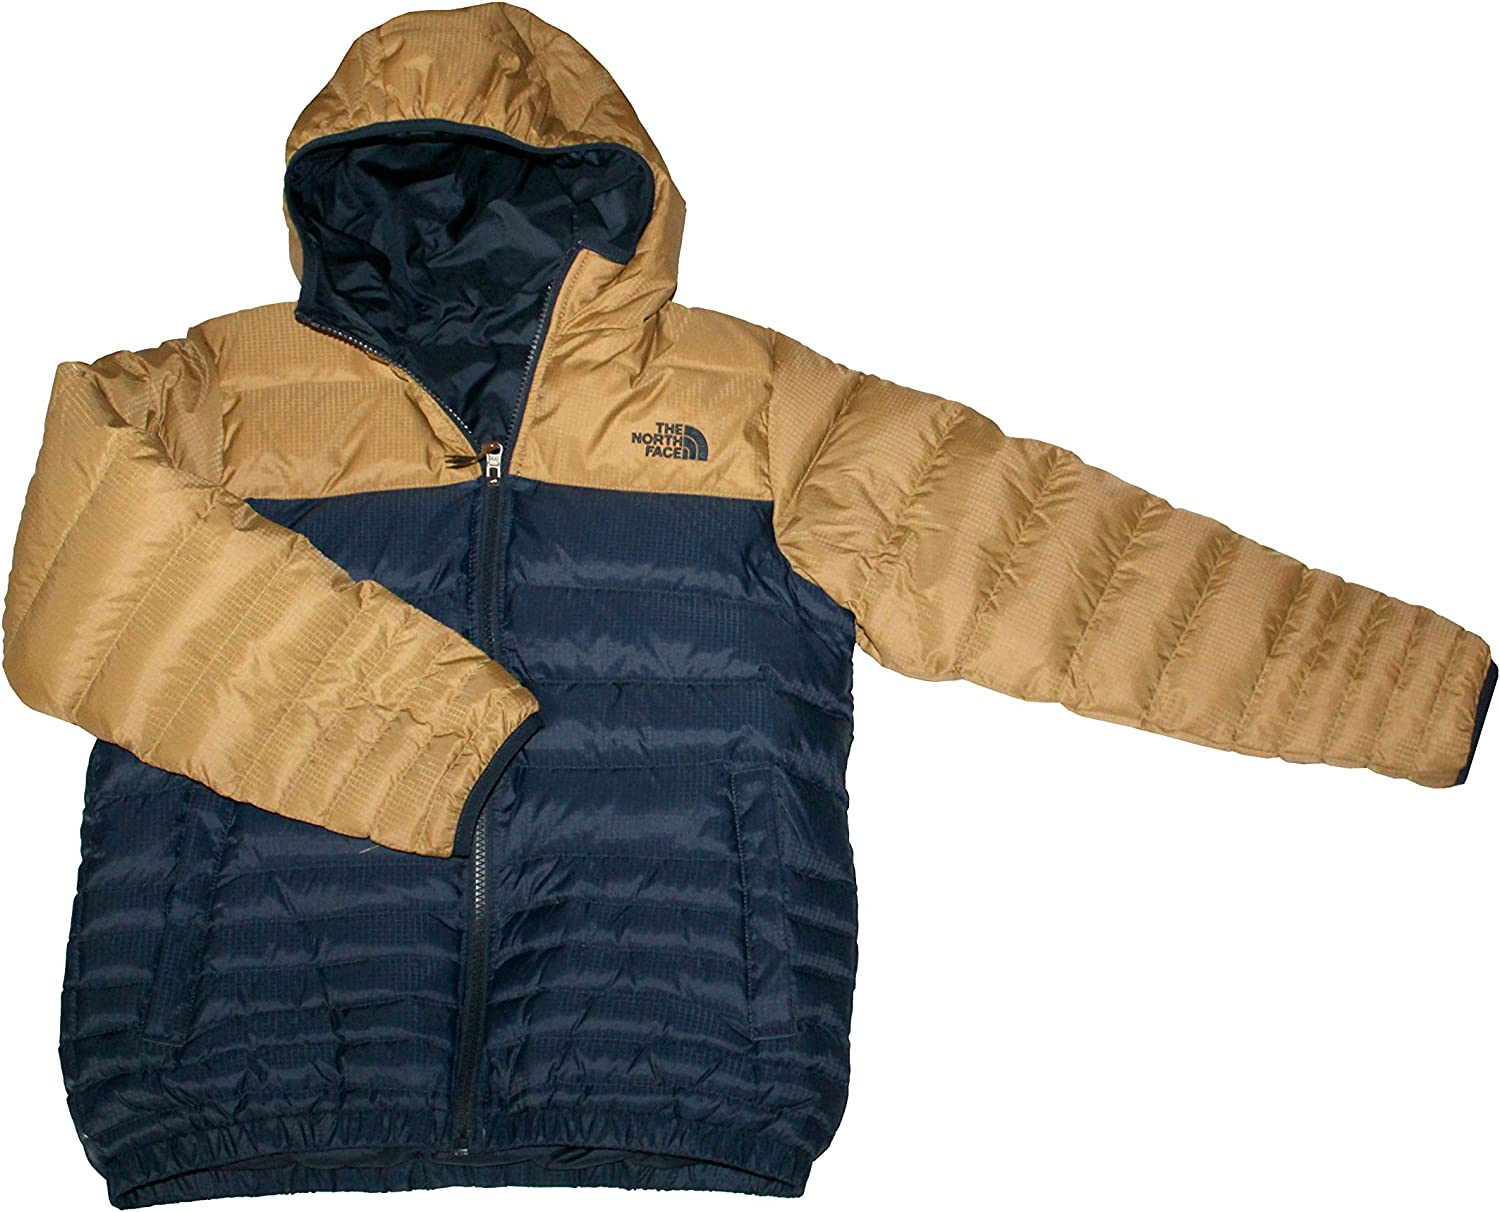 THE NORTH FACE Kinder B Andes Jacket Insulated Down: Amazon